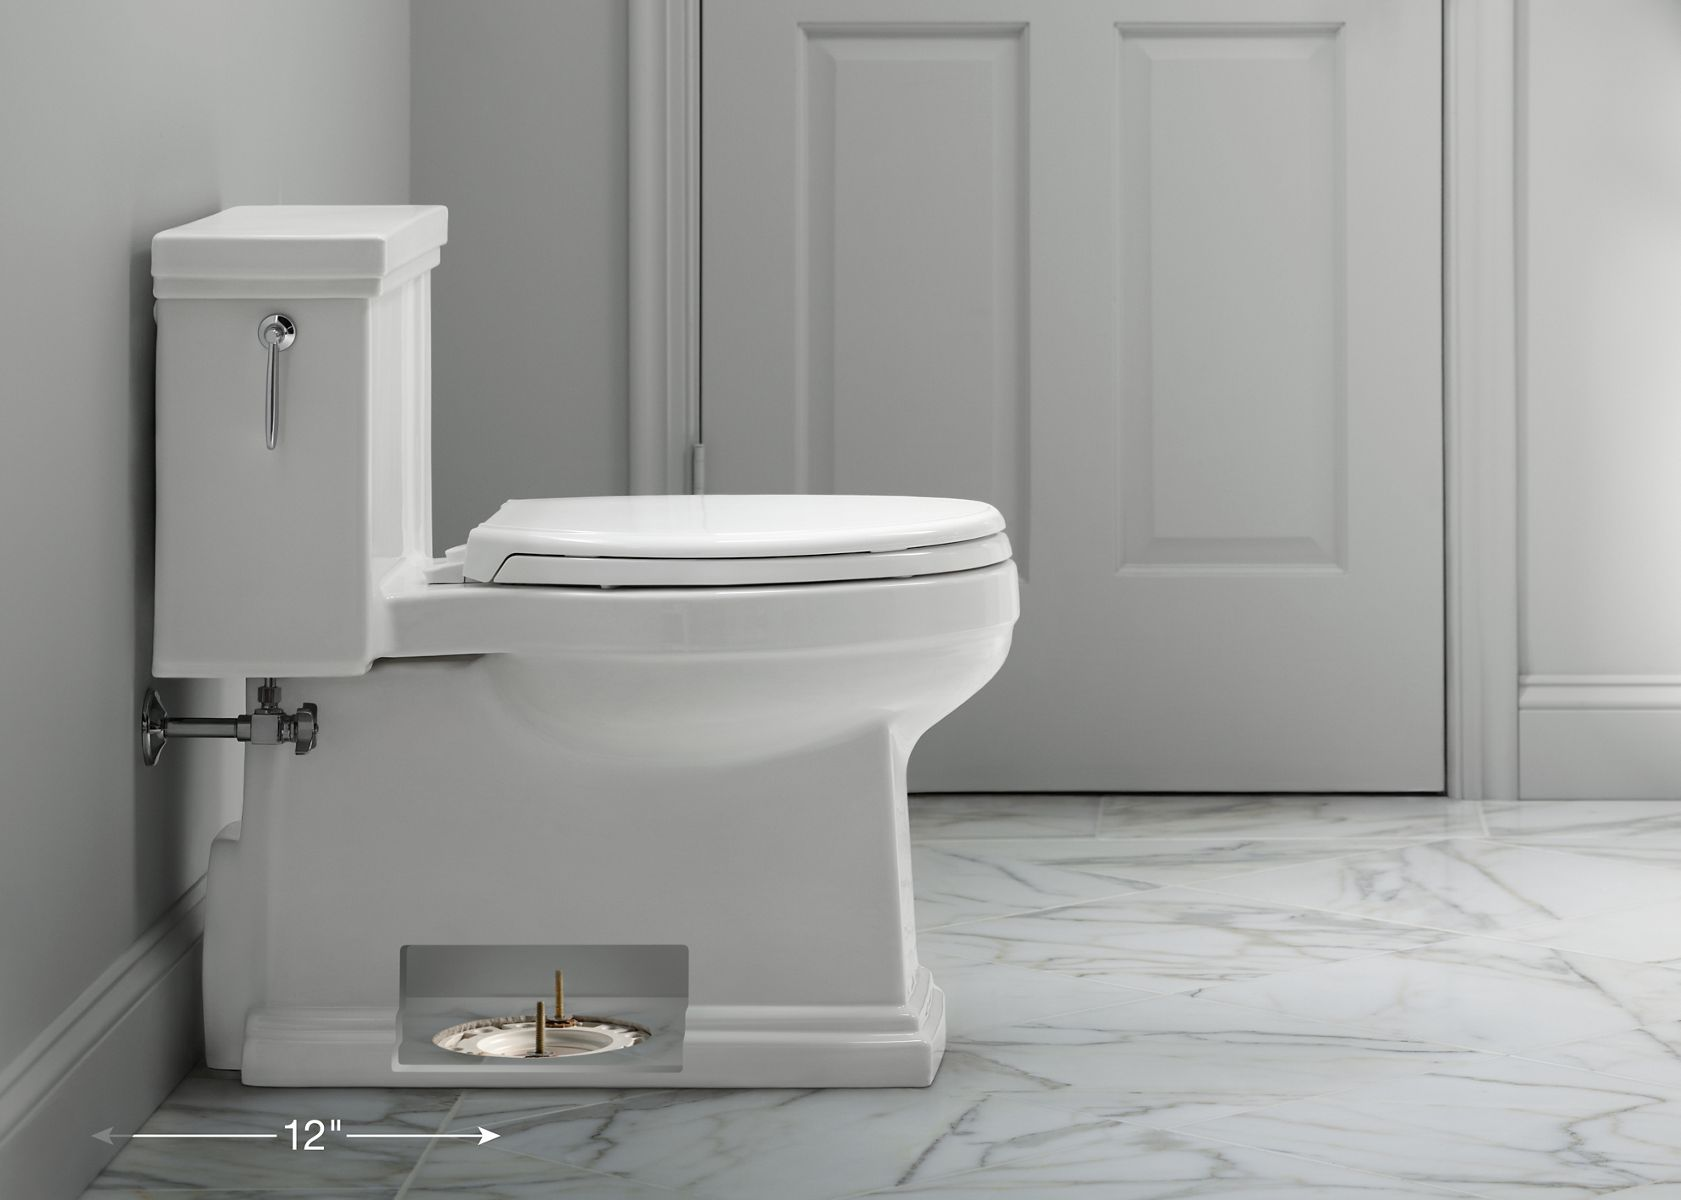 to ensure your new floormount toilet fits your space measure from the wall not the baseboard to the floor bolts that attach the toilet to the floor